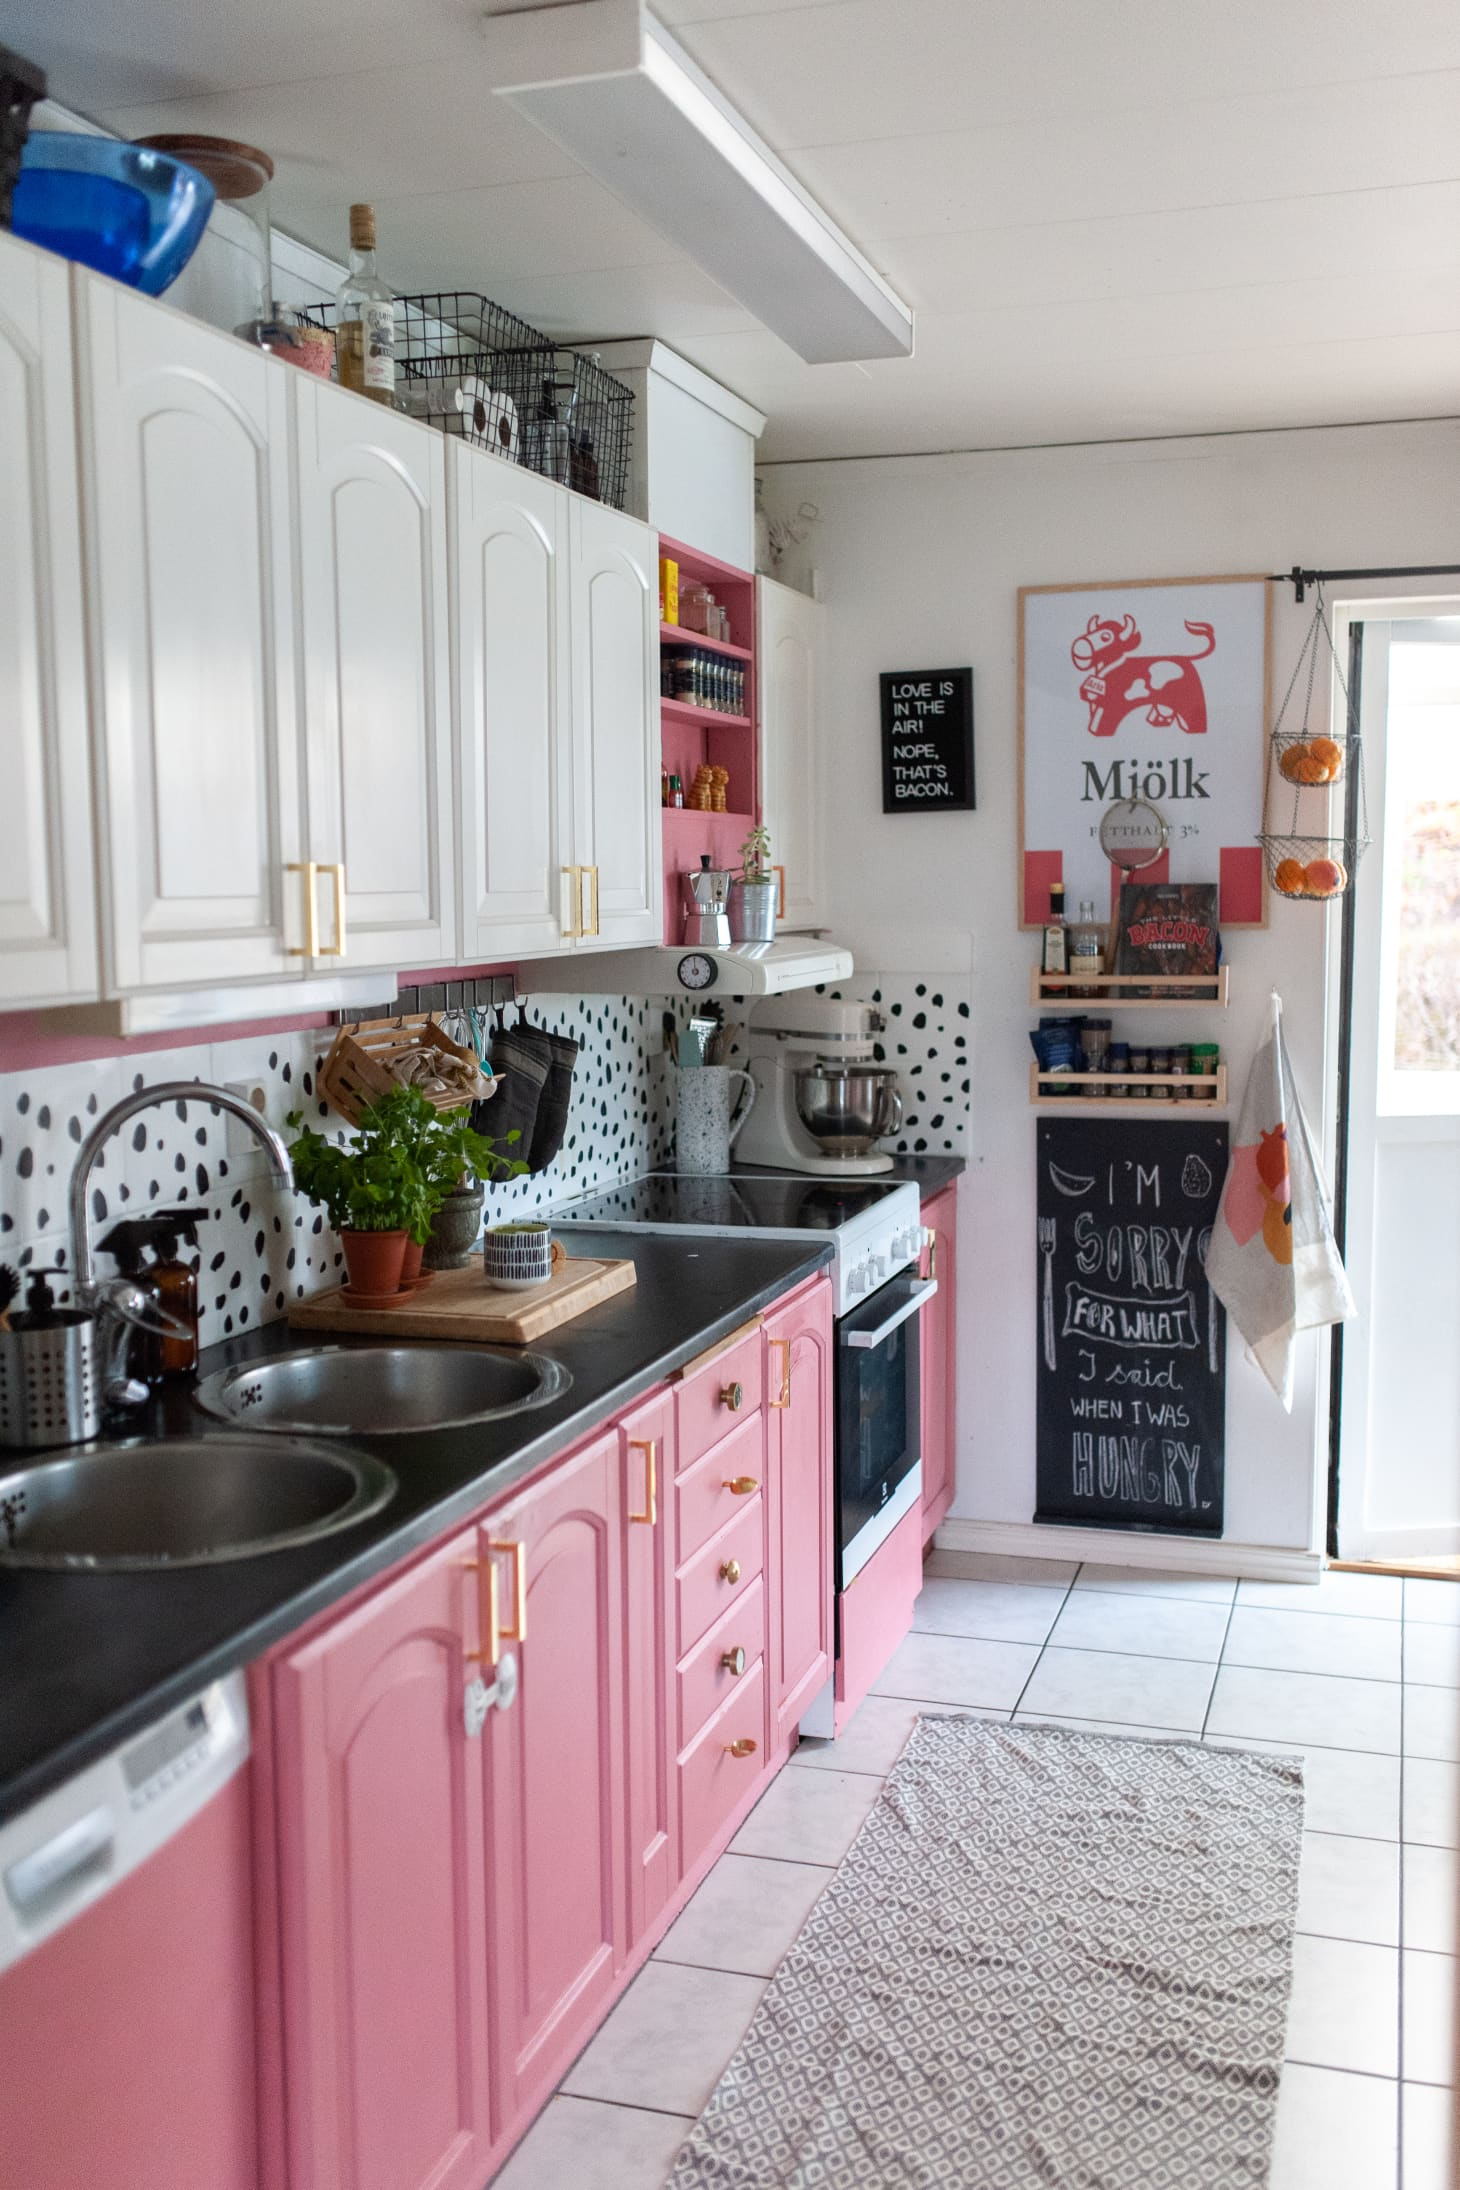 This Swedish Home Has The Most Glorious Pink Kitchen